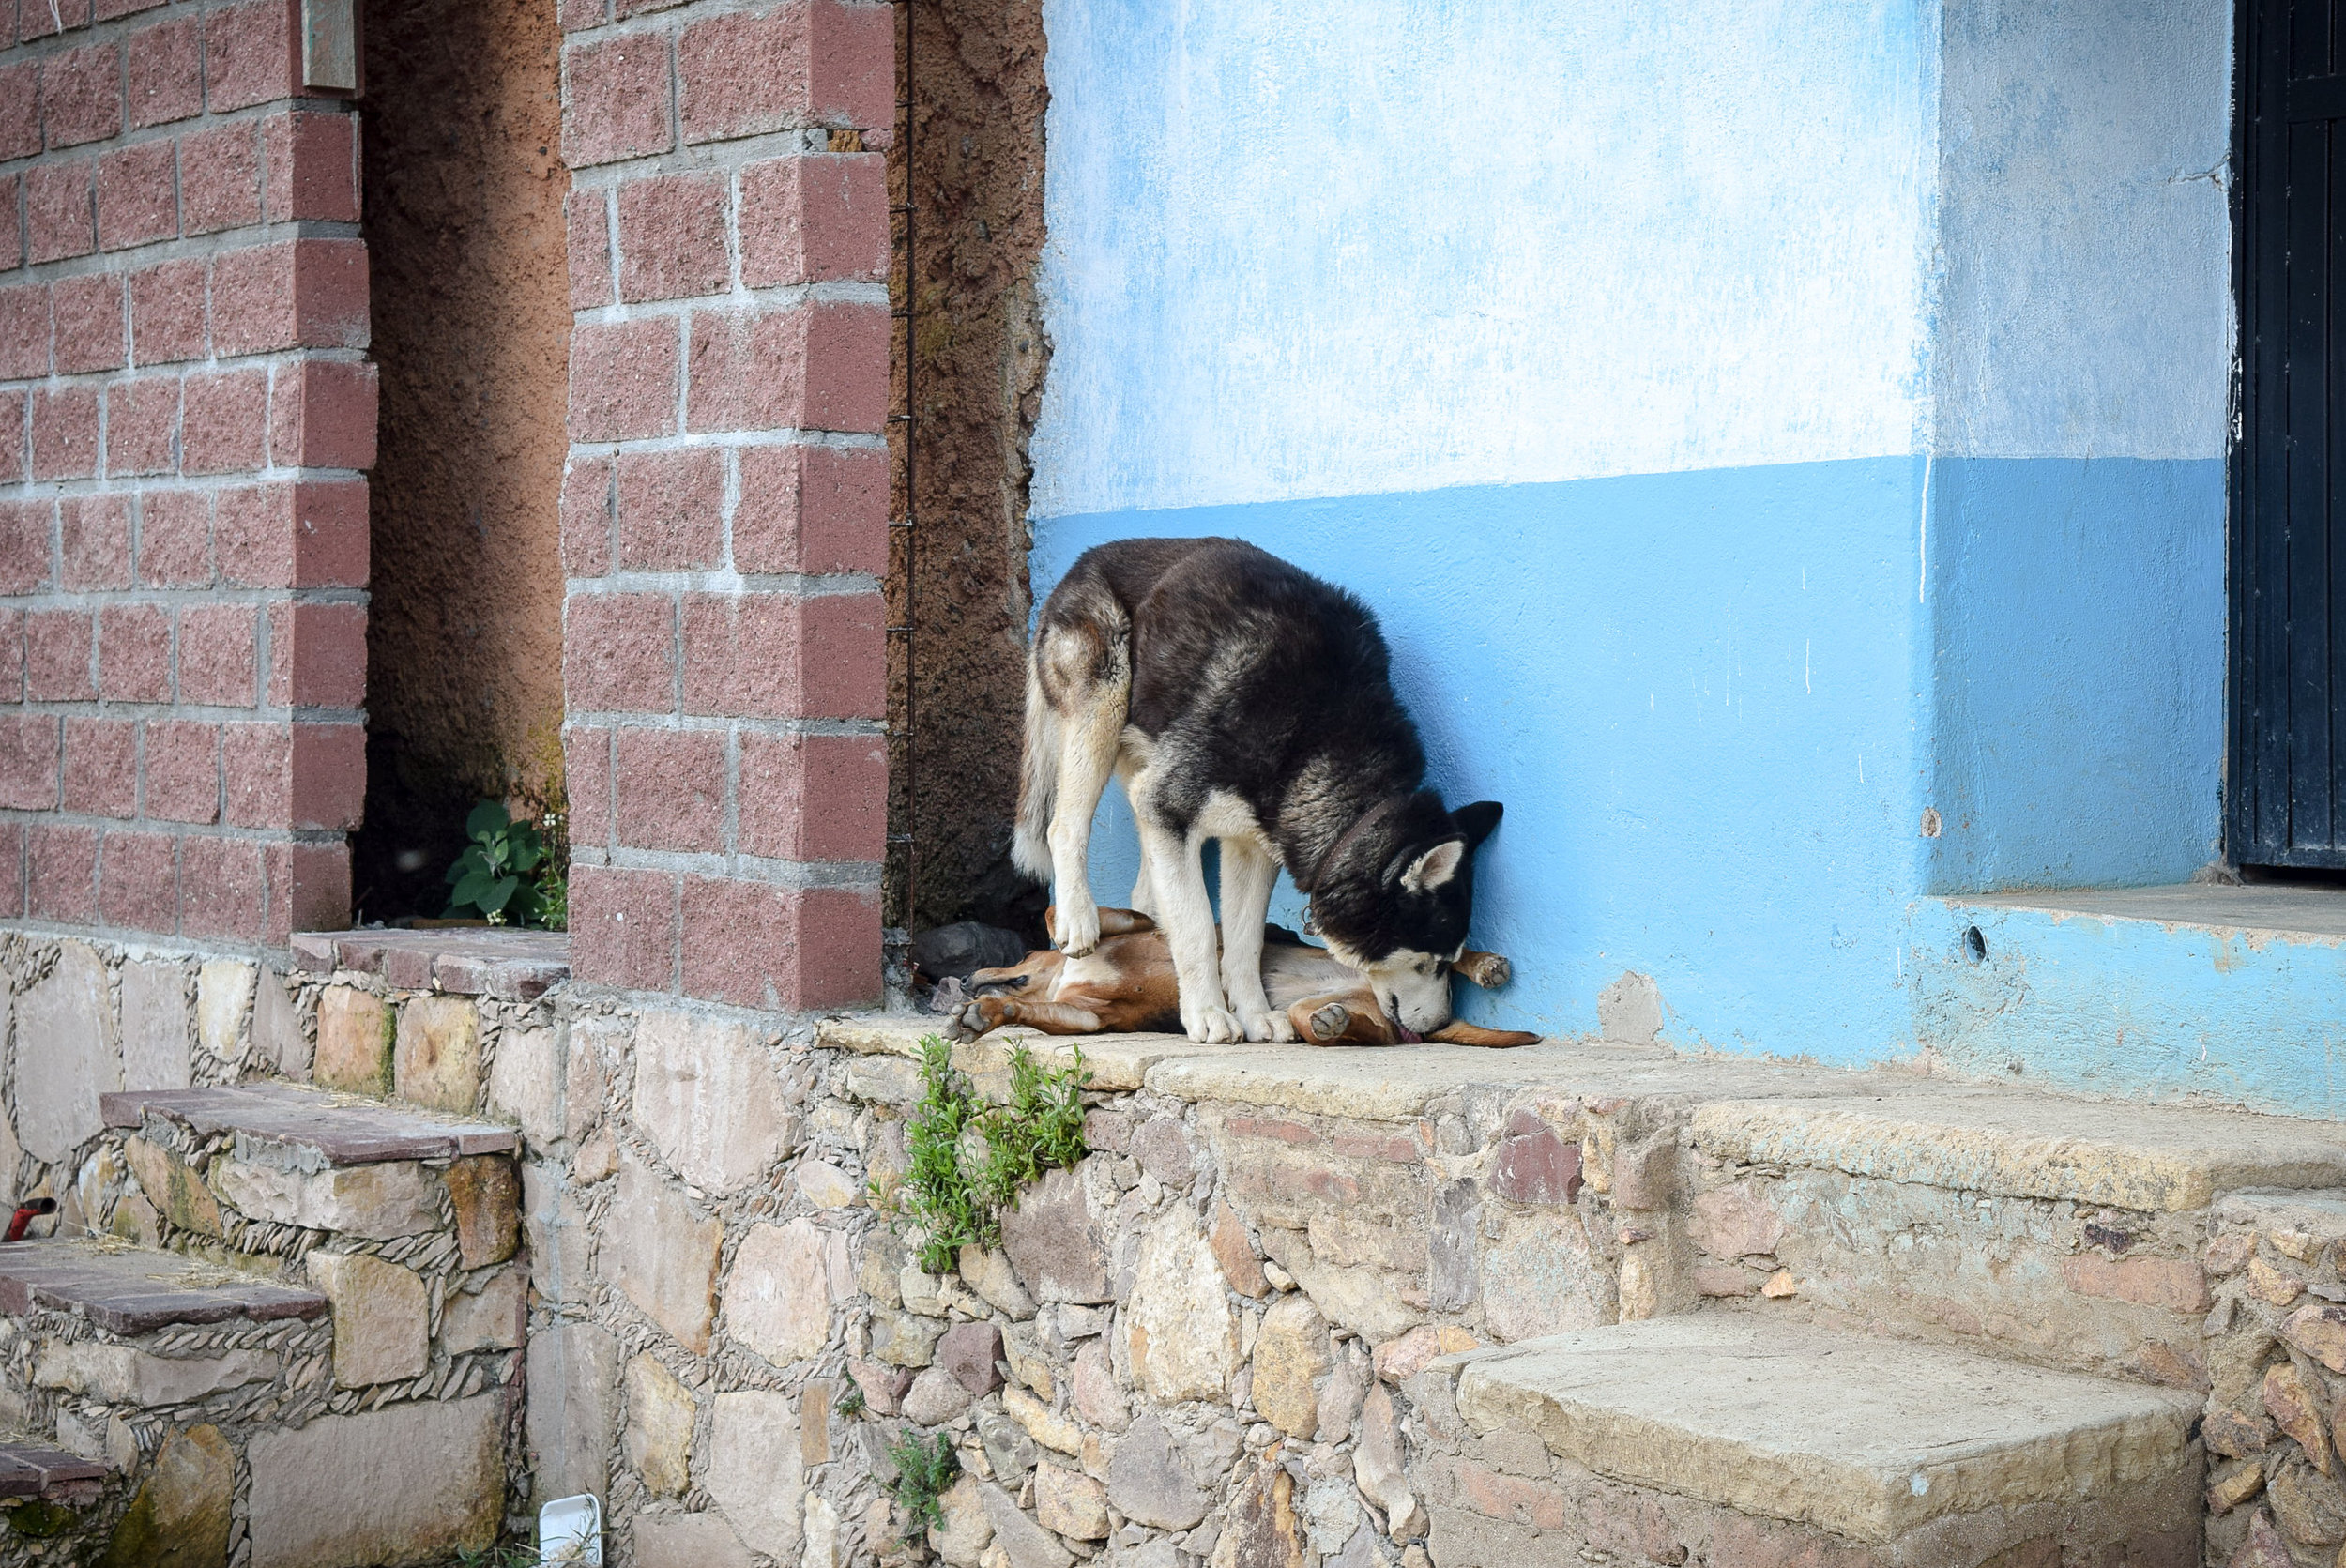 Dogs in Santa Rosa de Lima, Mexico